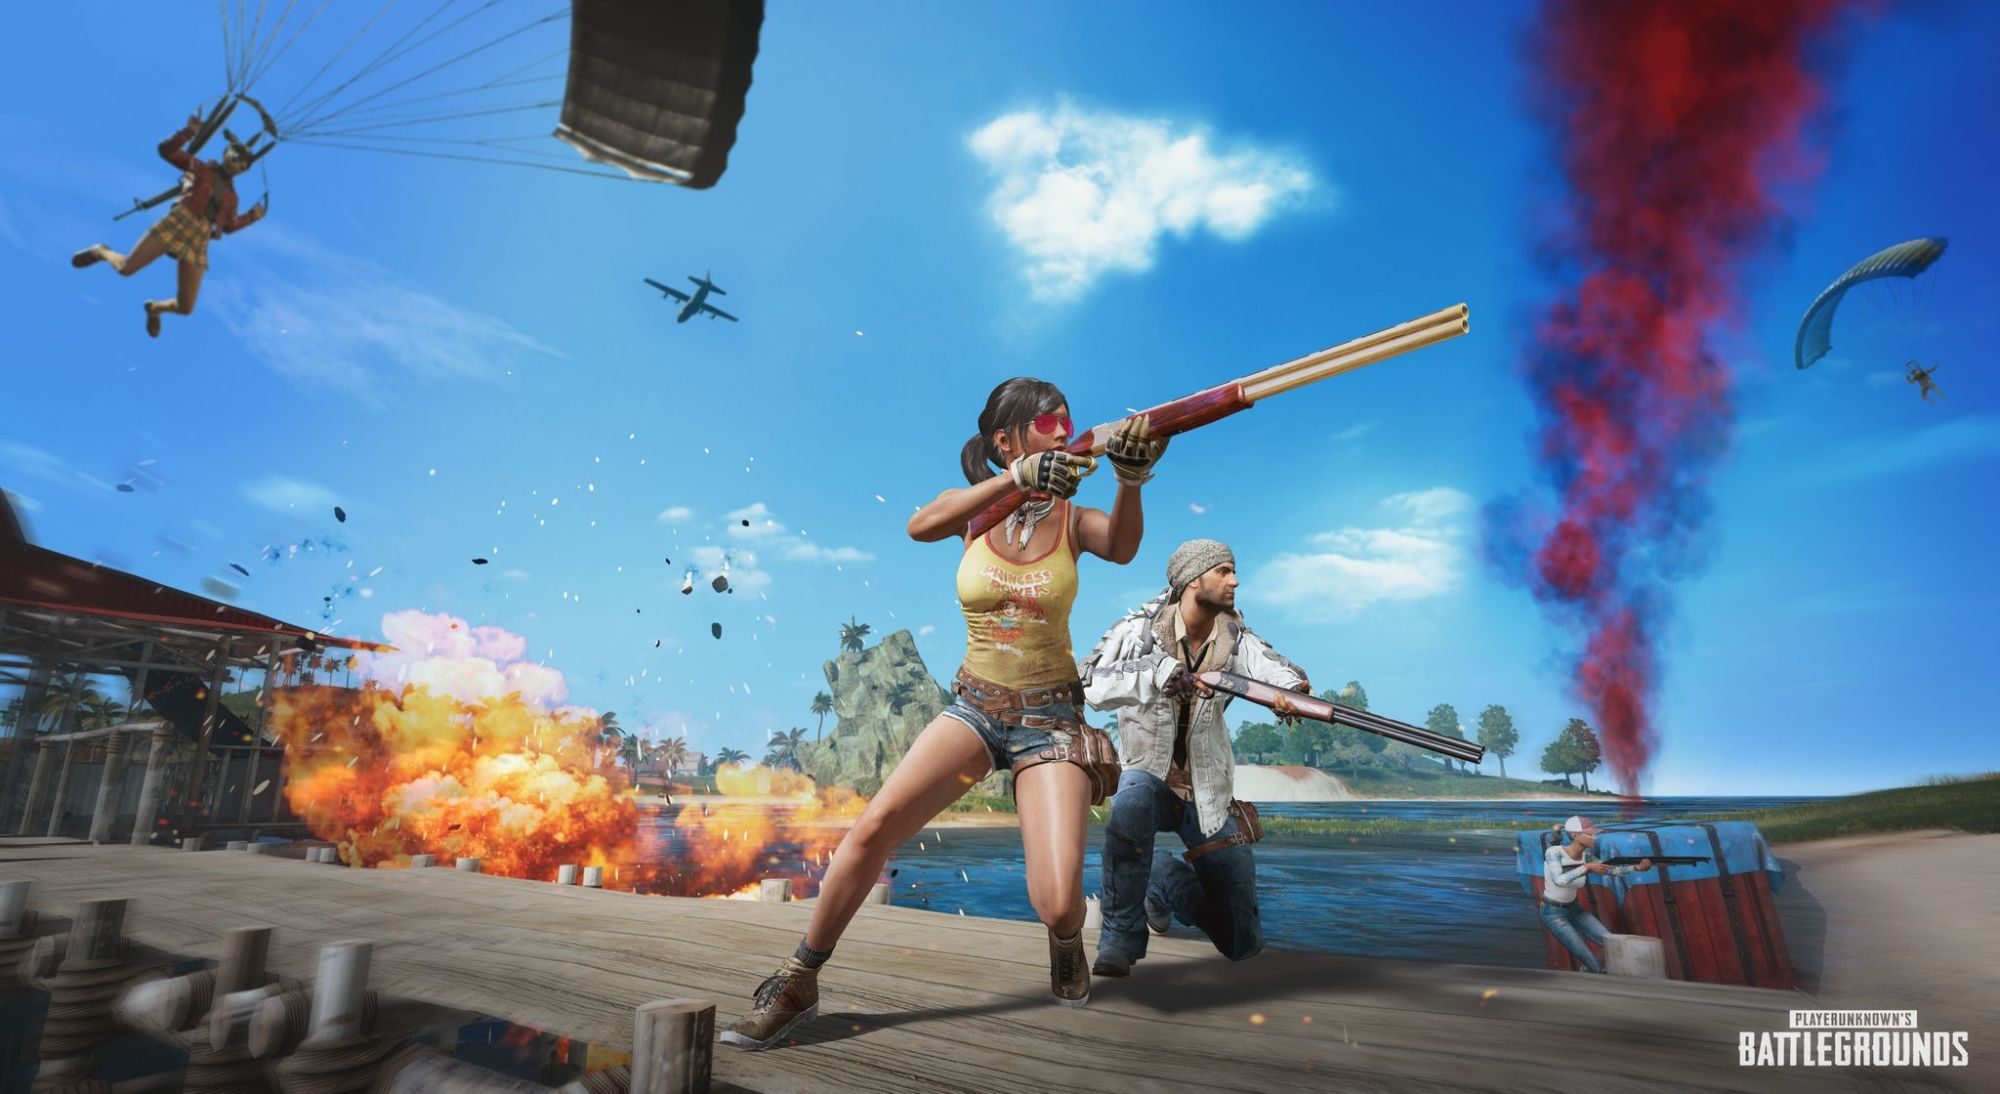 Pubg Sanhok Wallpaper 4k: FaceIT Officially Launches PUBG On Its Platform